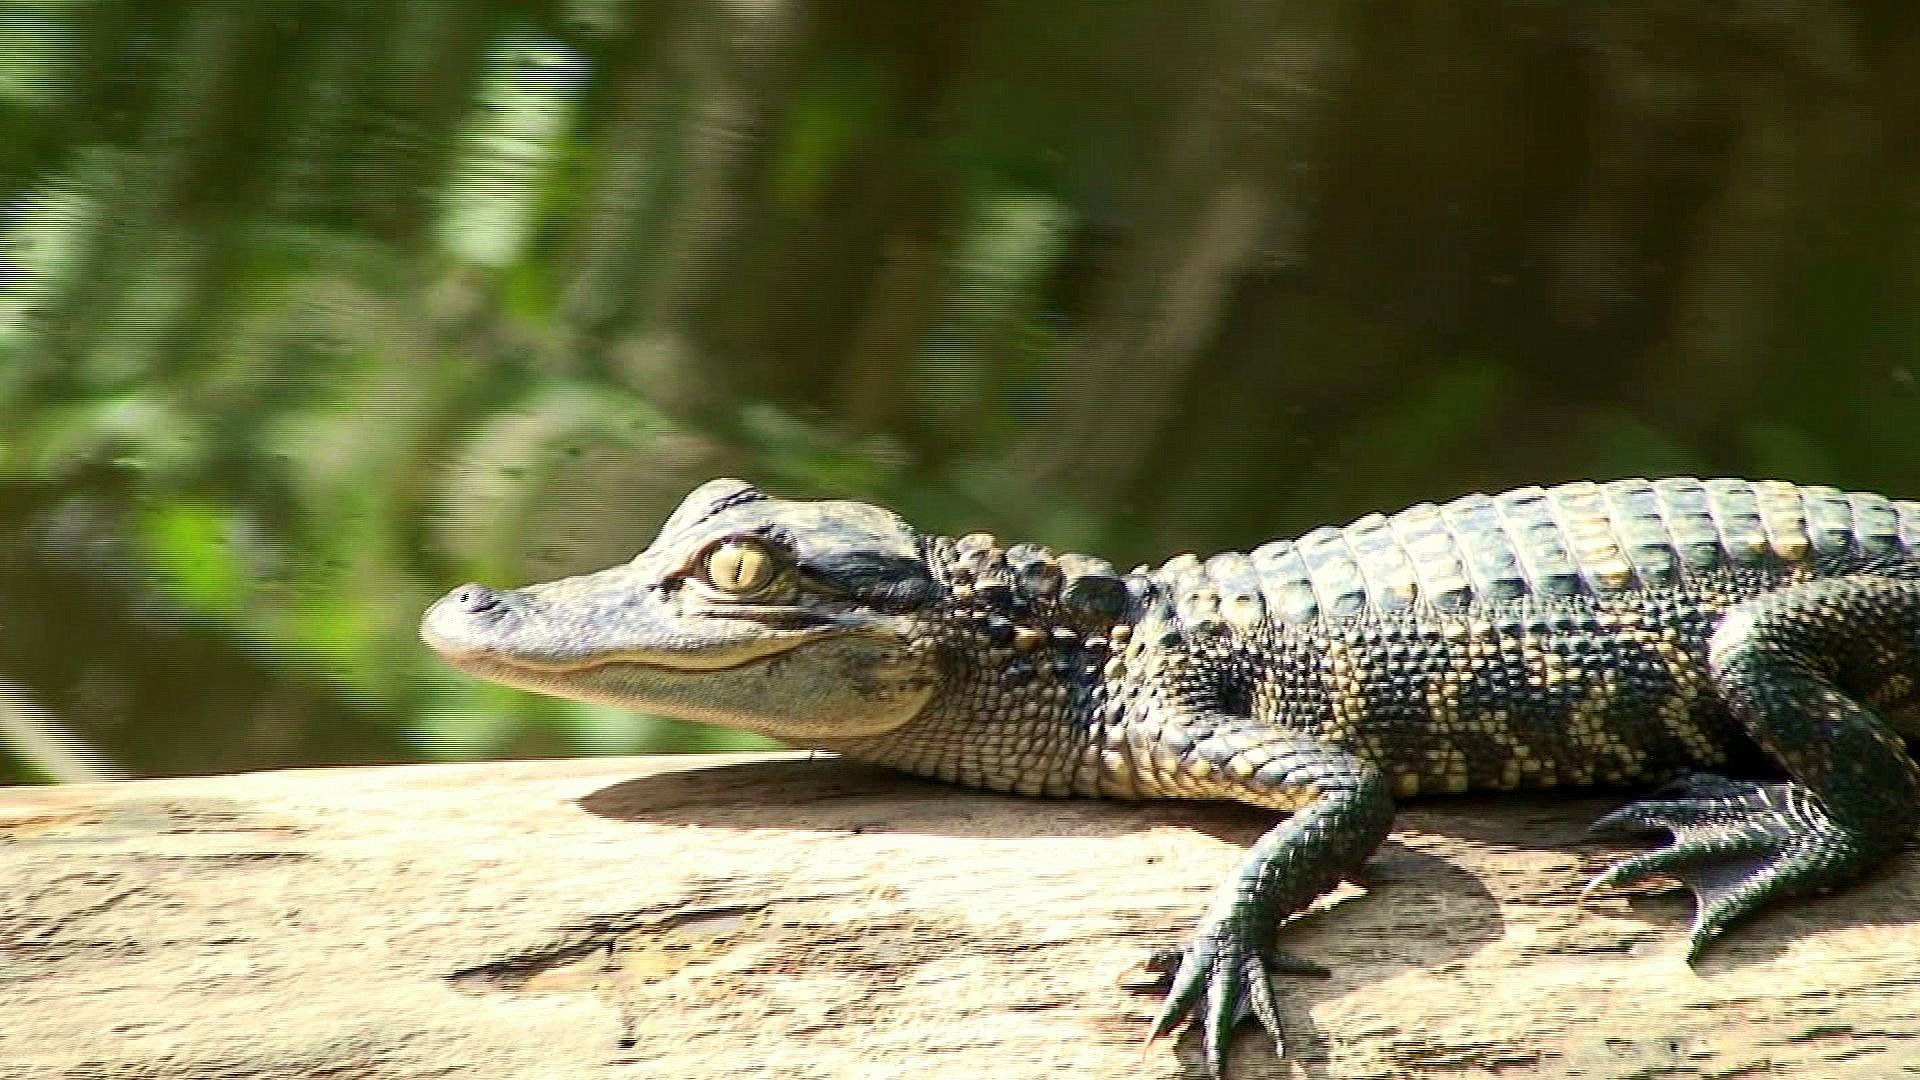 The Life Cycle Of A Wild Alligator In The Everglades